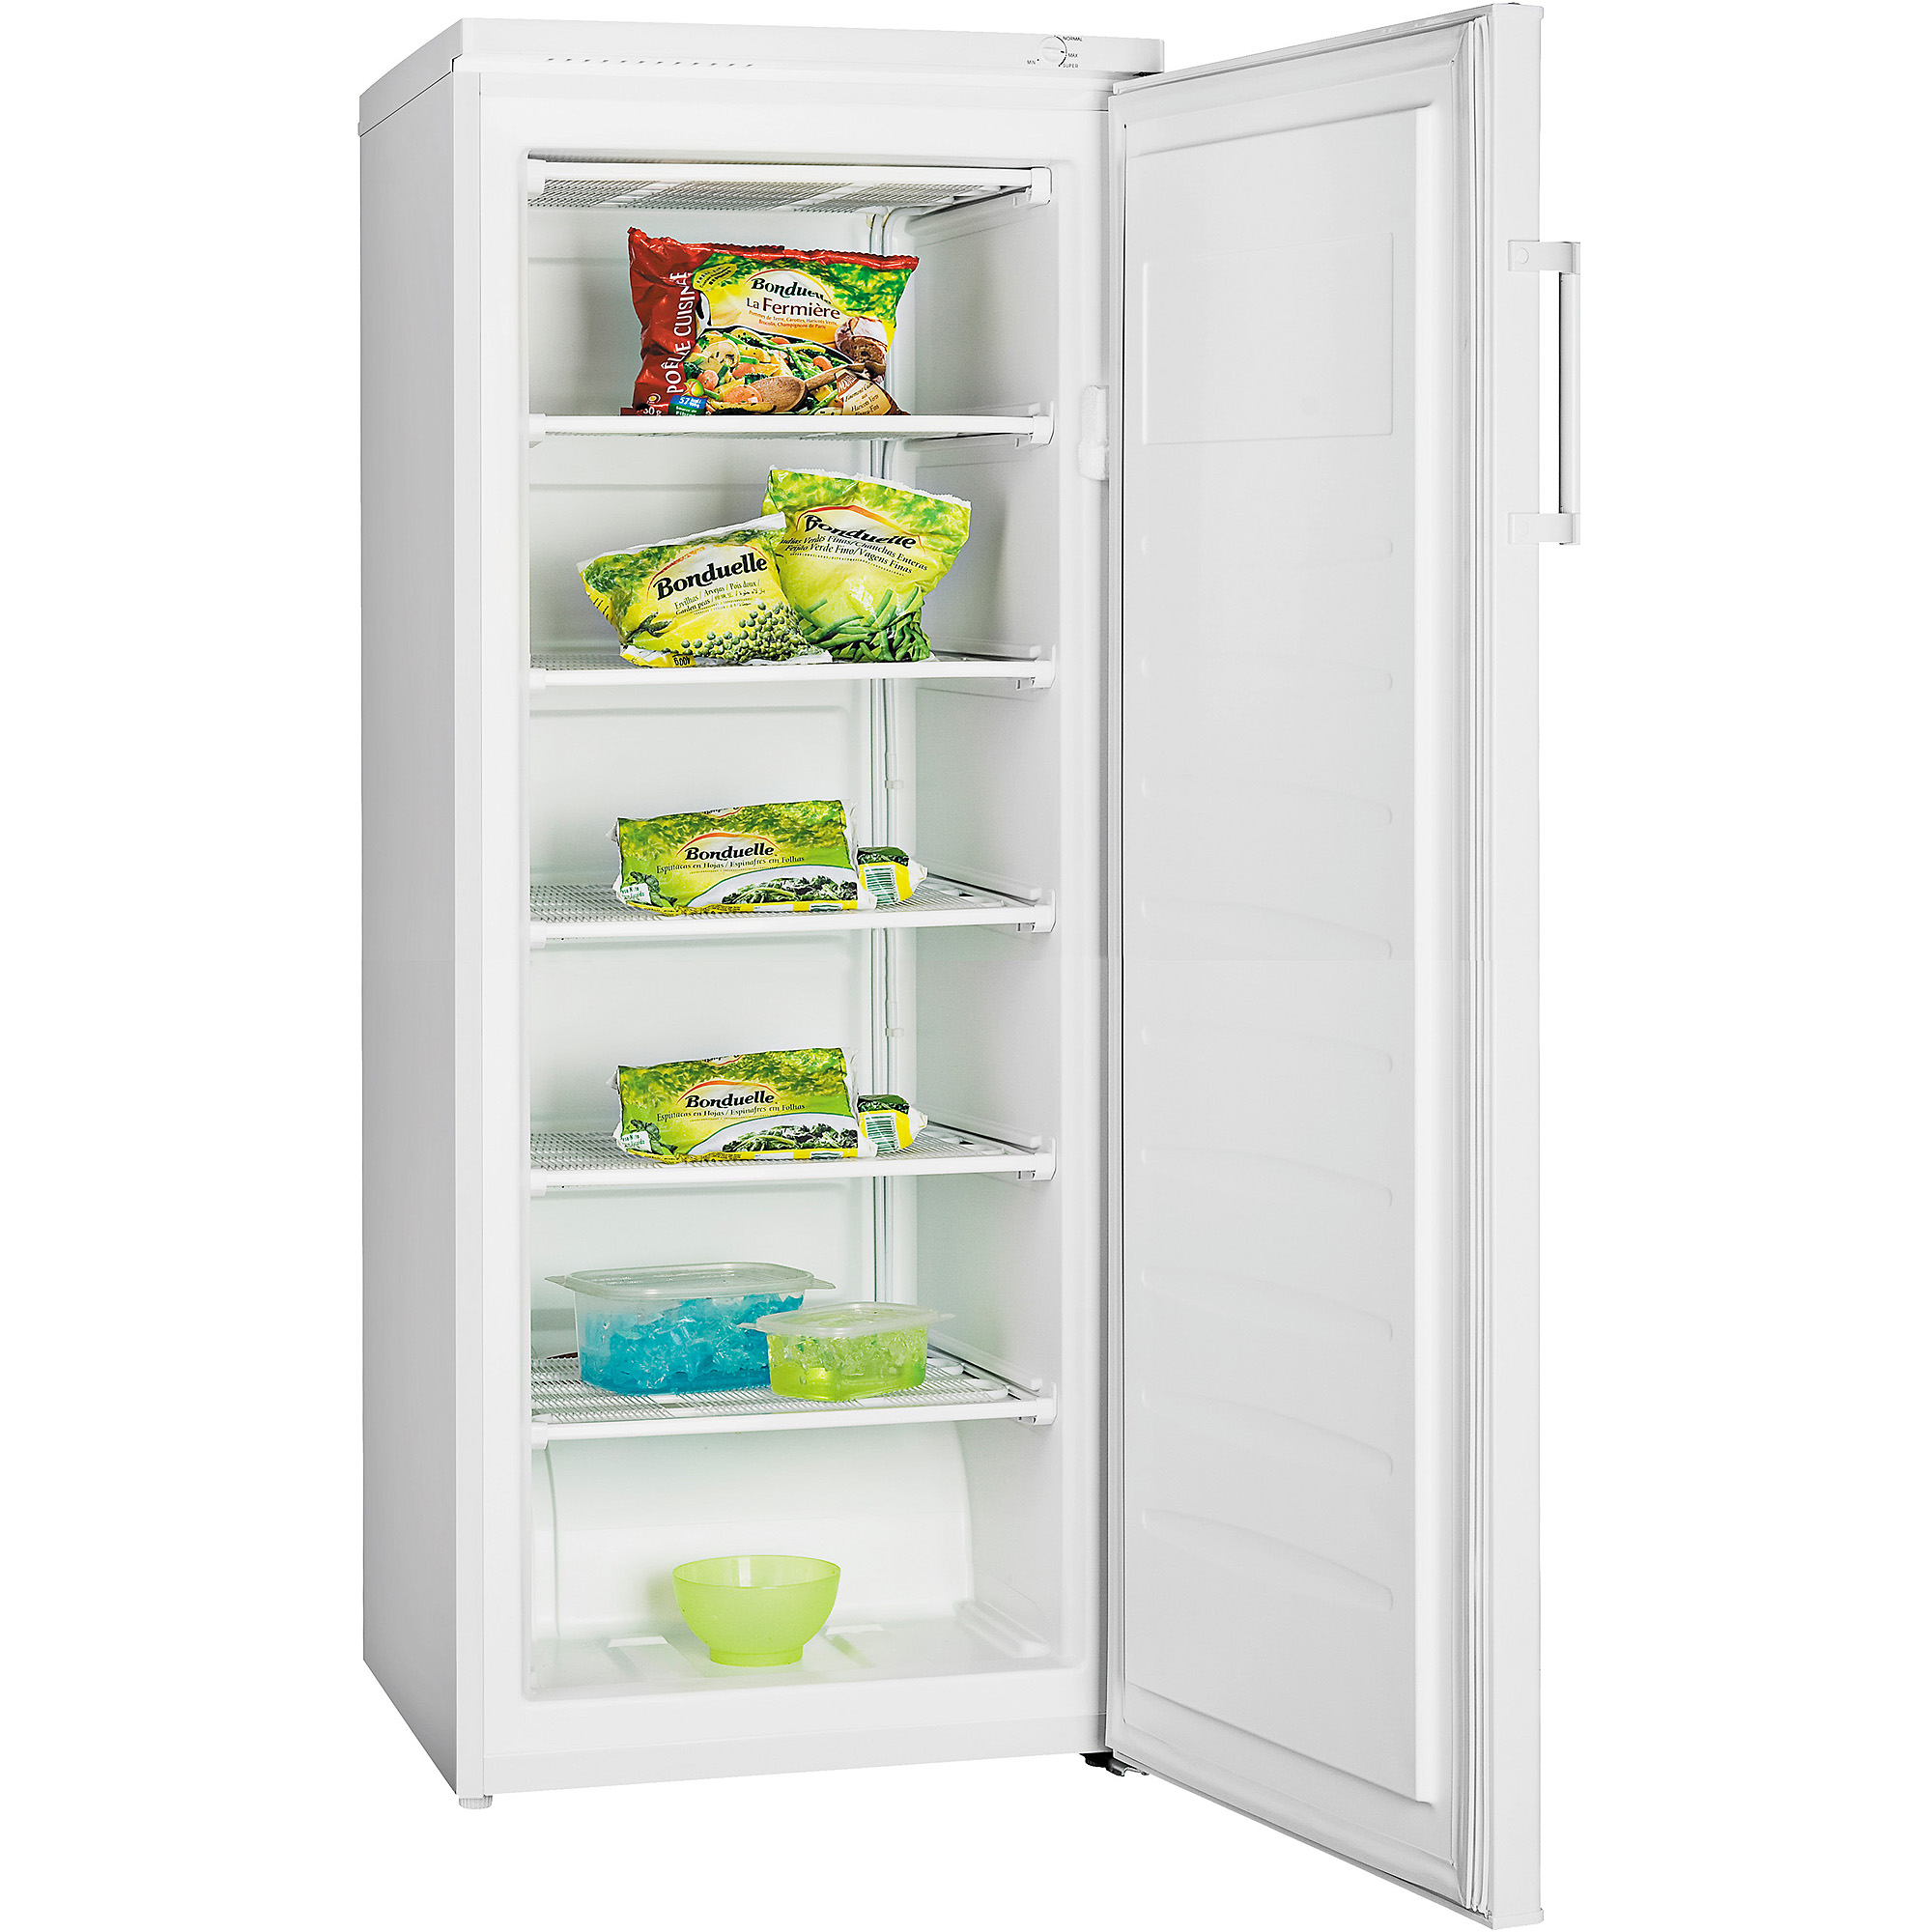 Vertical Freezers For Sale Igloo 65 Cu Ft Upright Freezer White Walmartcom